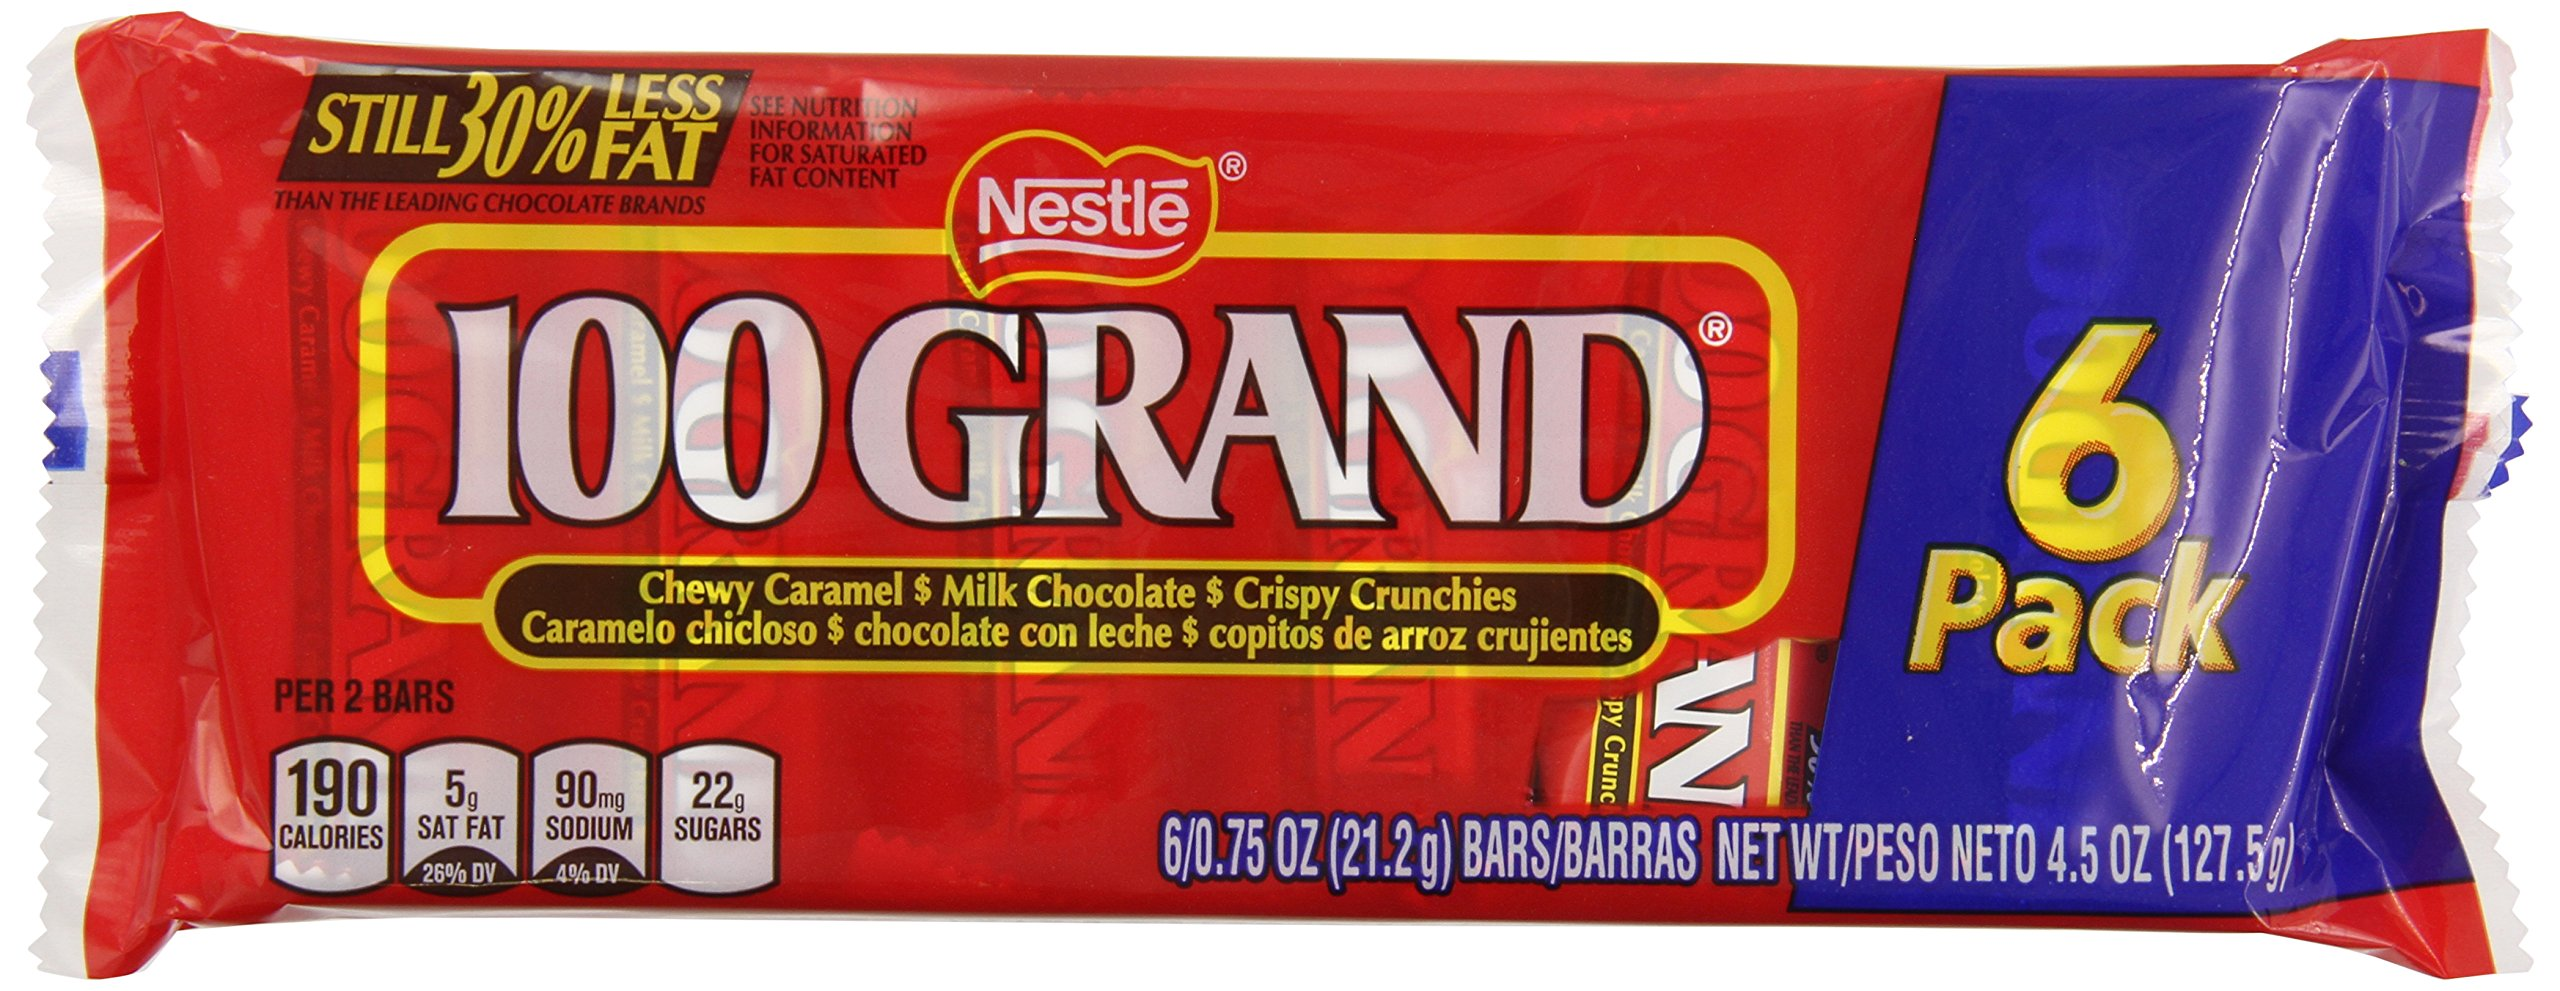 100 Grand Snack Tray, 6 Count (Pack of 24)